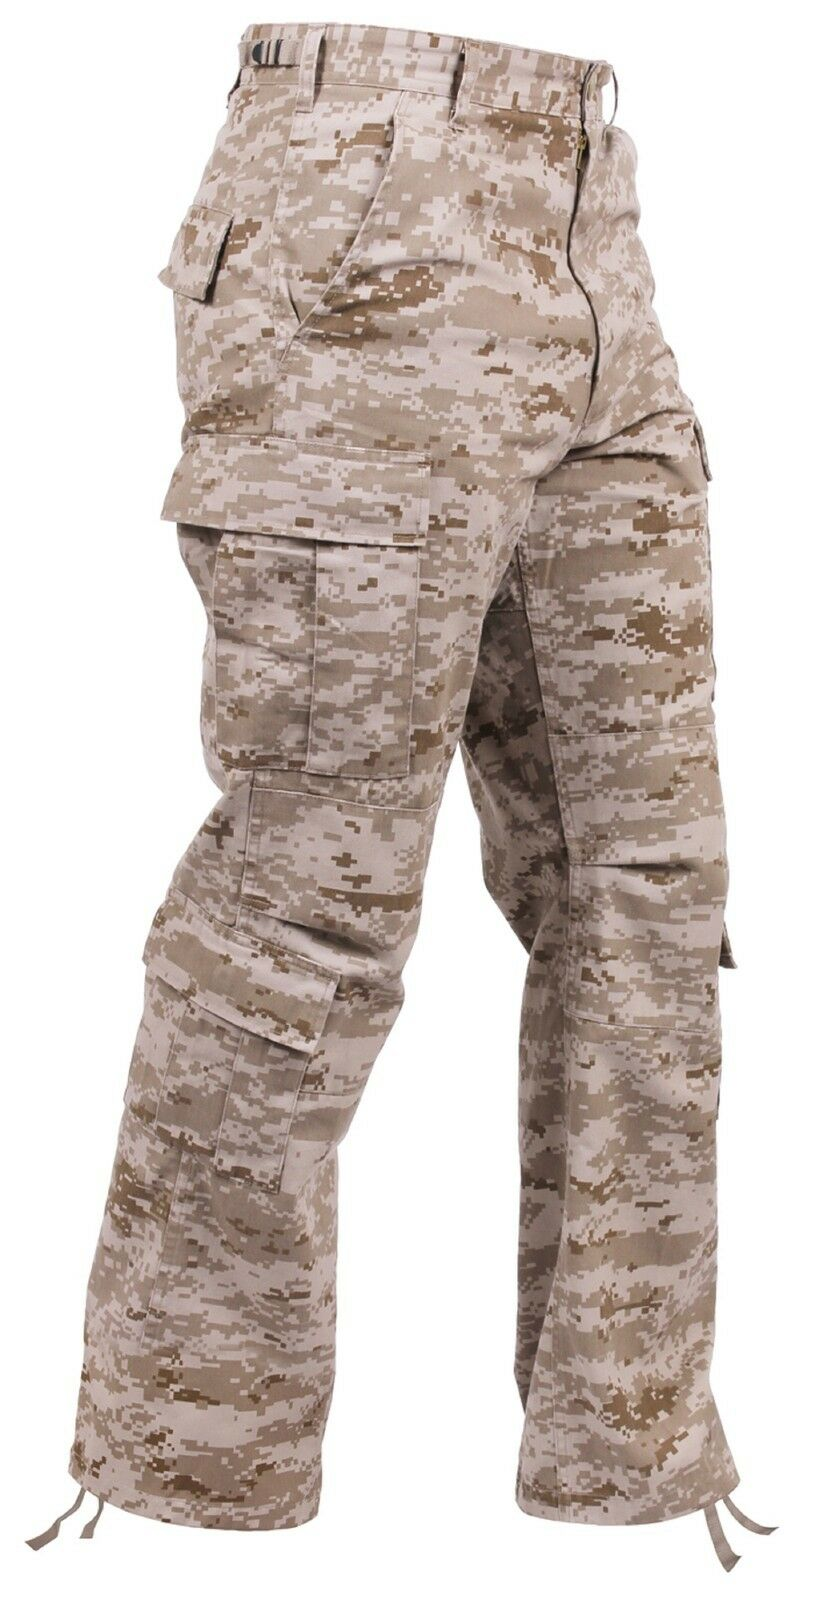 Men's Desert Digital Camouflage Military Fatigue Cargo Pants S - 3XL NWT